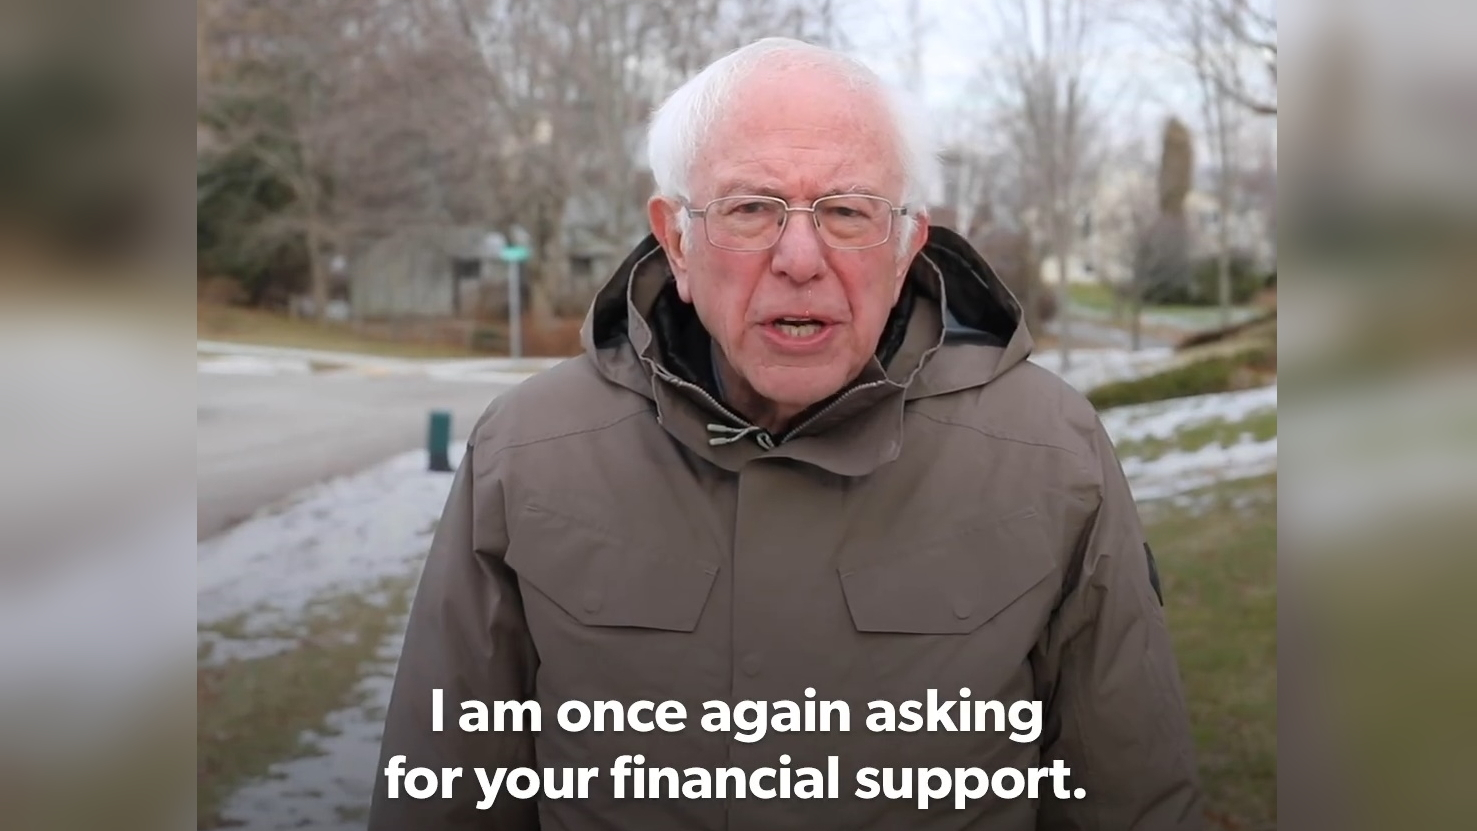 I Am Once Again Asking for Your Financial Support